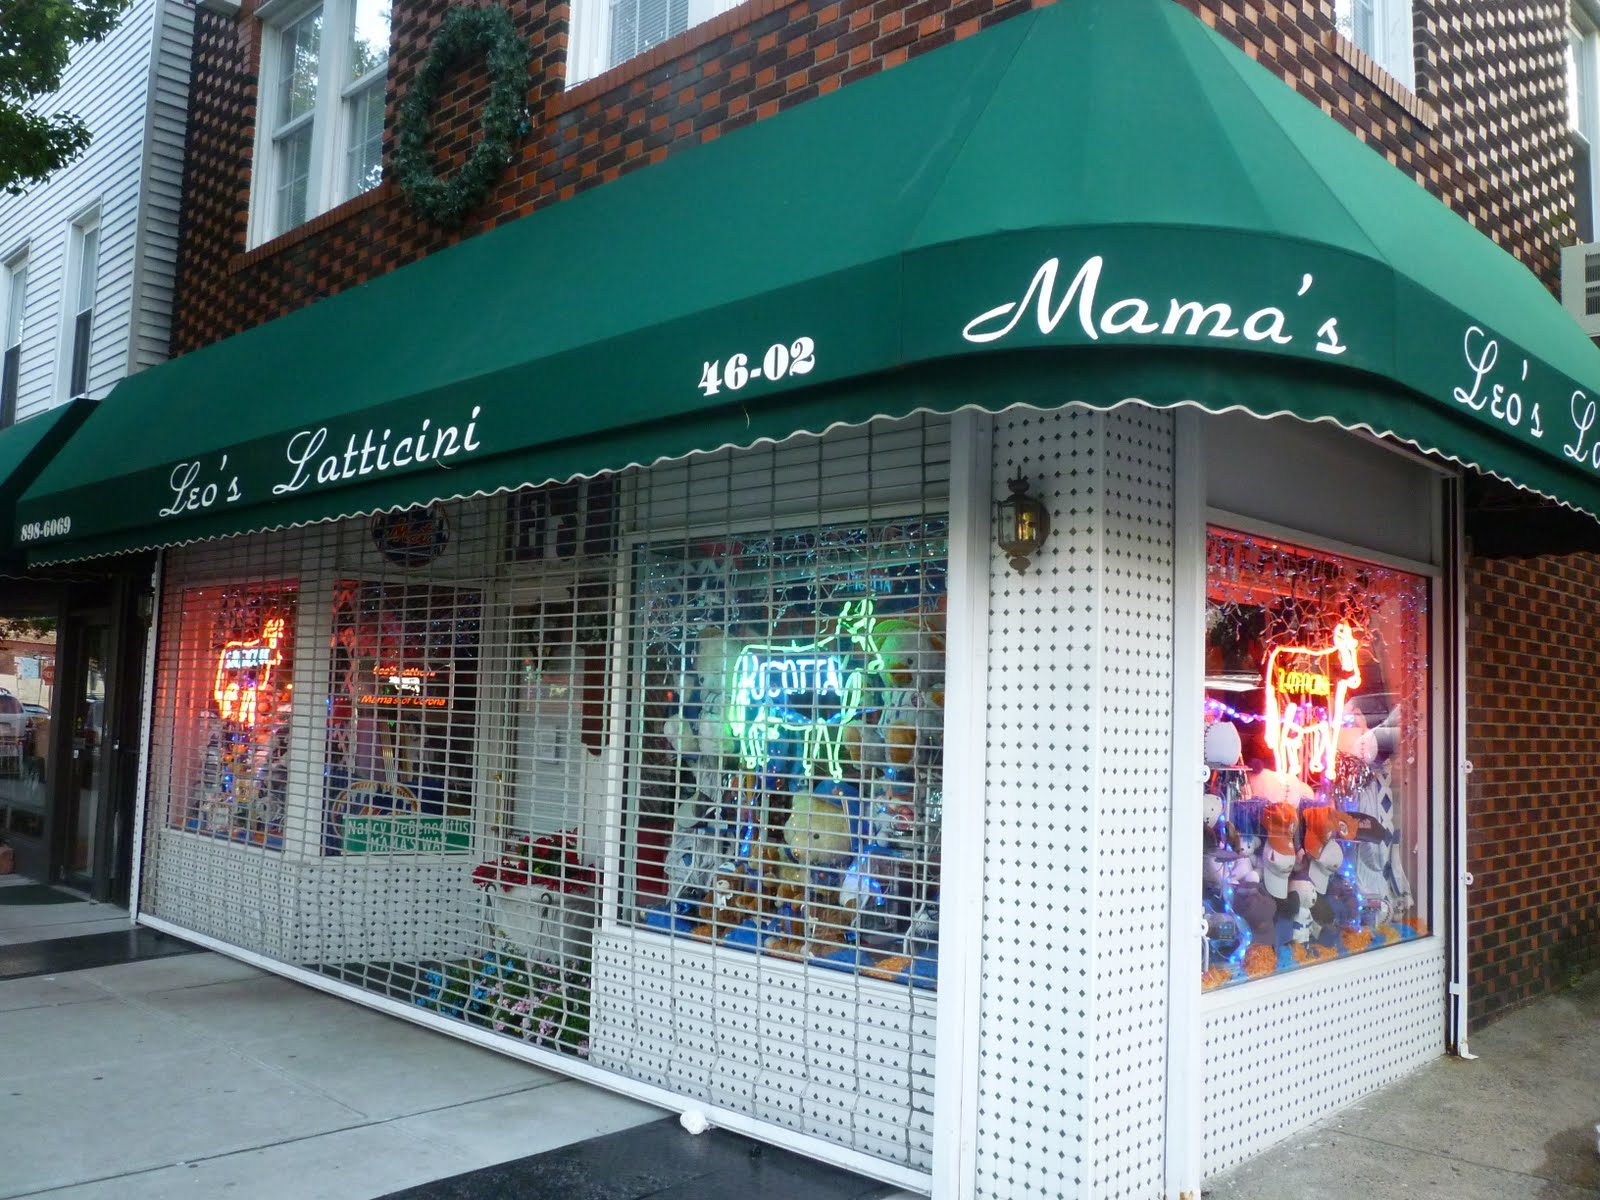 Leos Lattacini Or Rather Mamas Confusing Awning Is Part Of A Mini Empire Italian Businesses Along One Block 104th Street In Corona